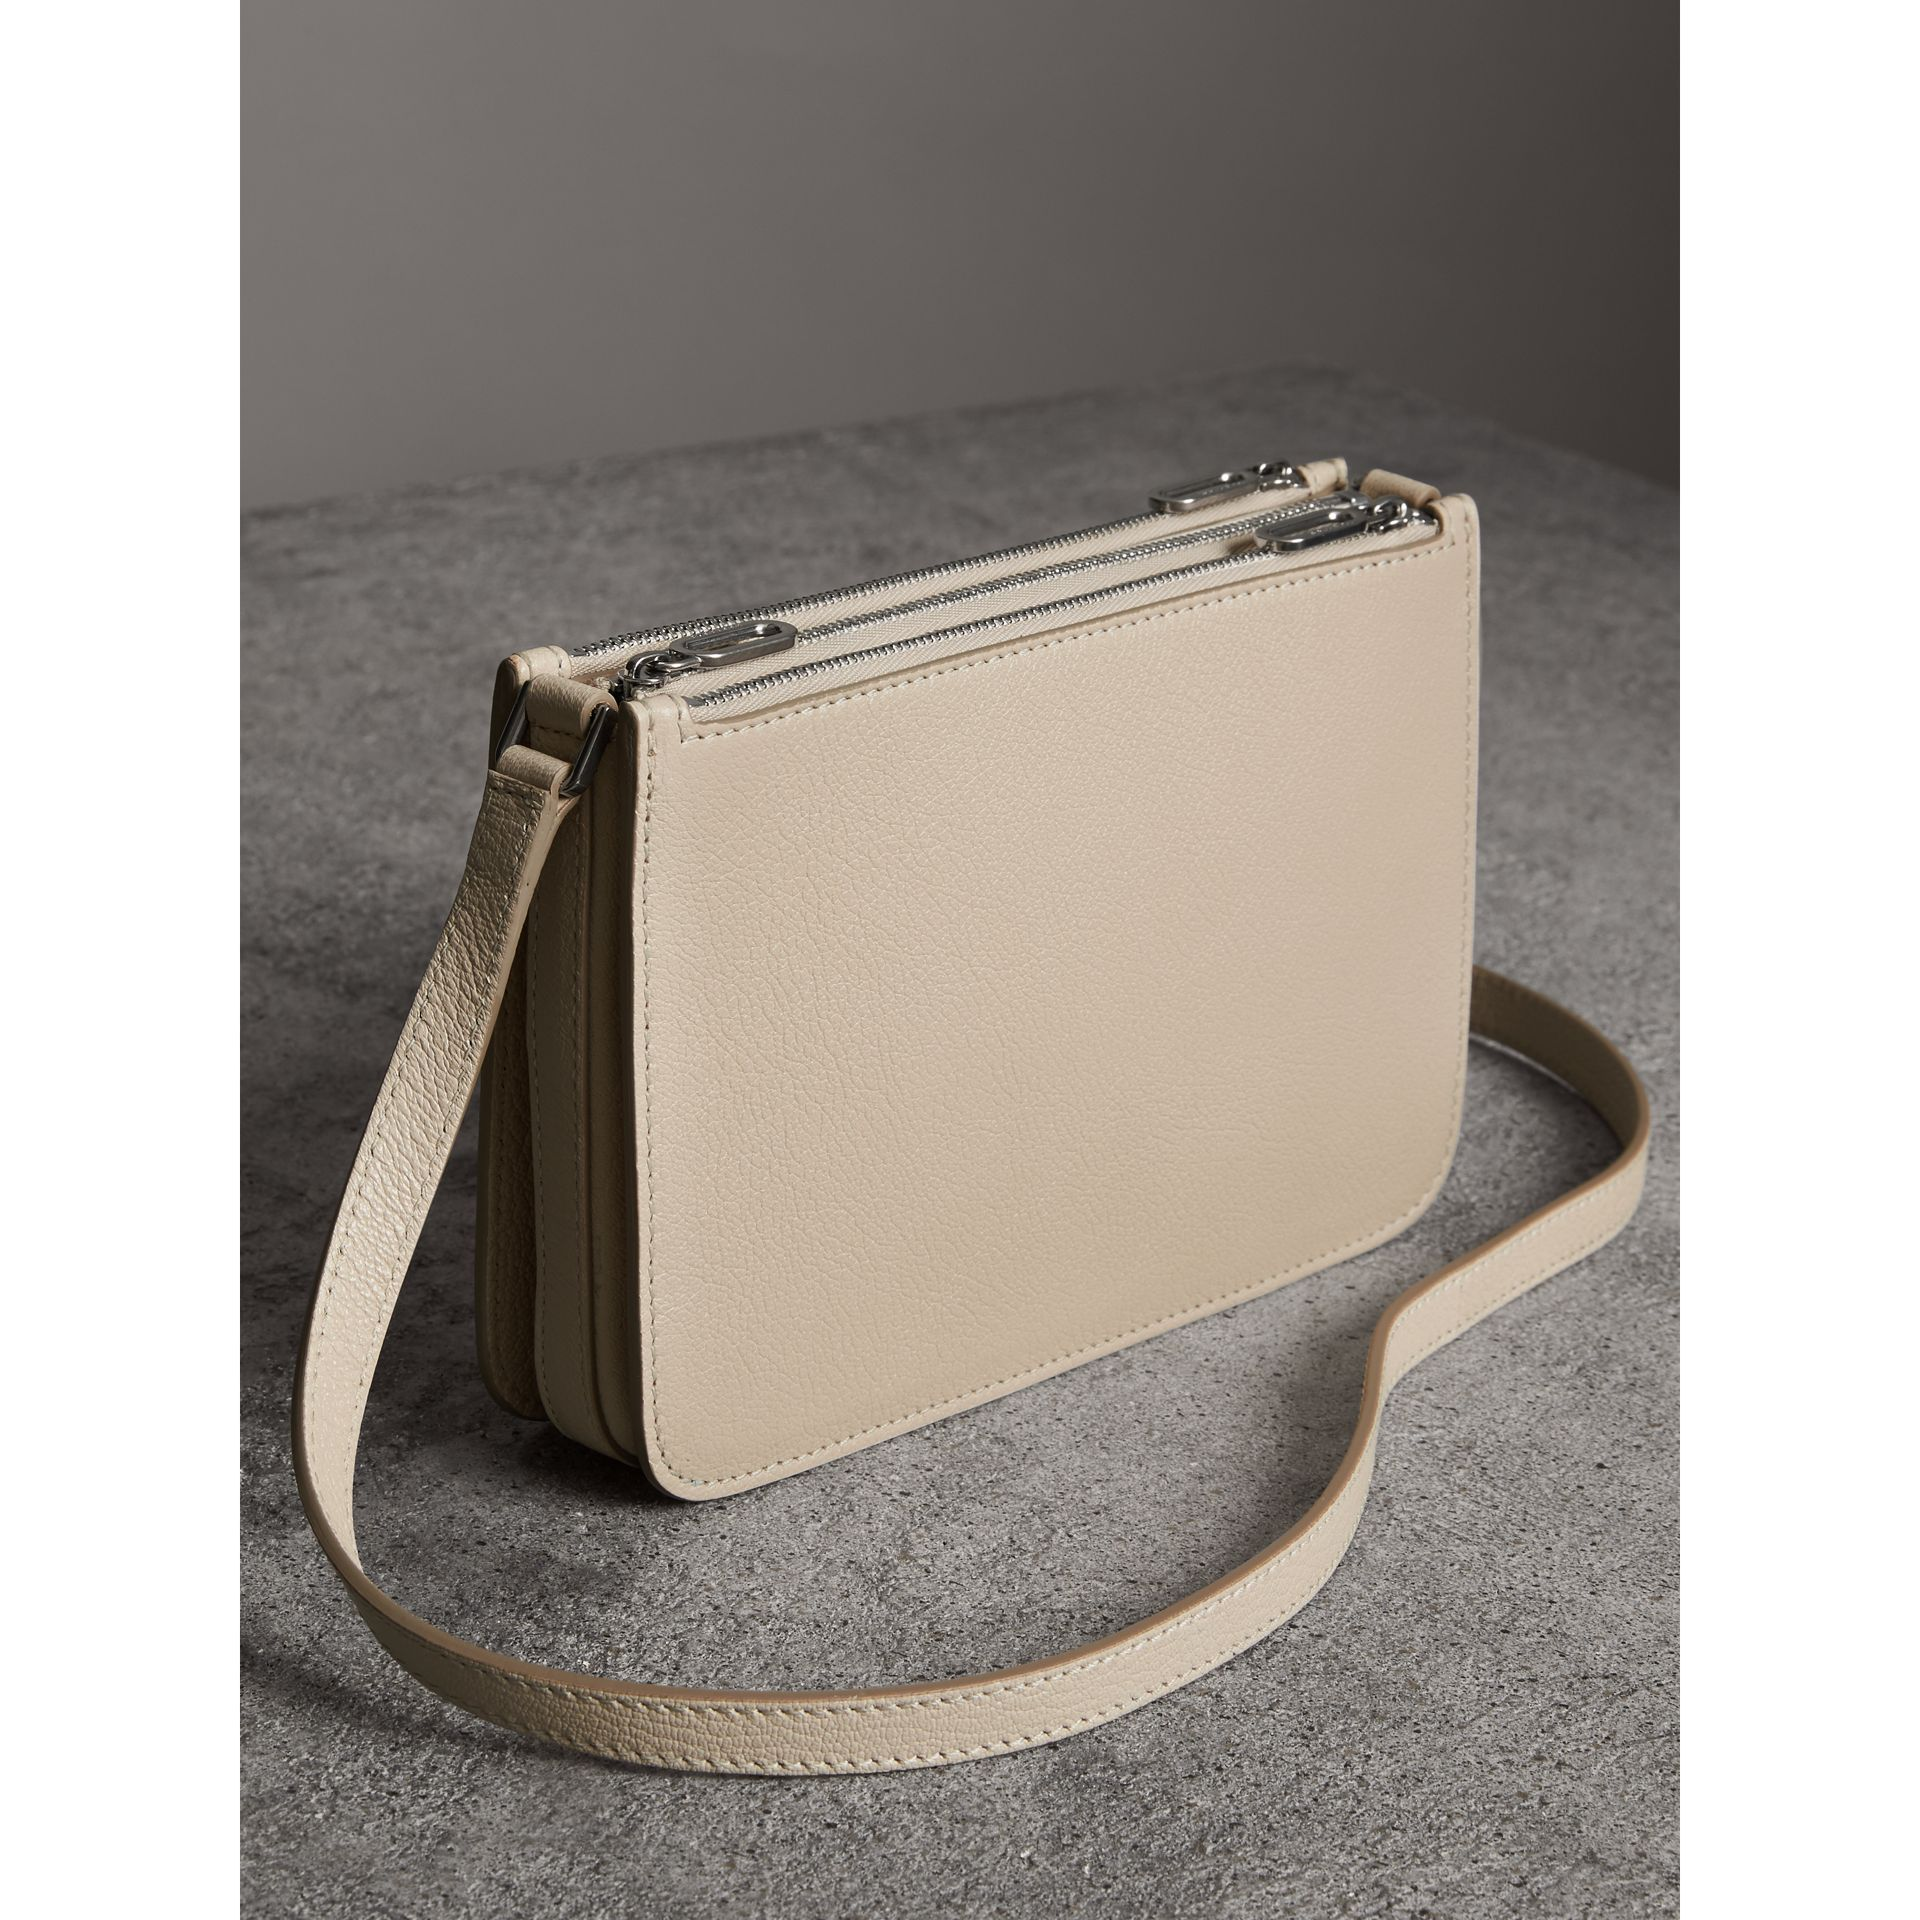 Triple Zip Grainy Leather Crossbody Bag in Stone - Women | Burberry United States - gallery image 4